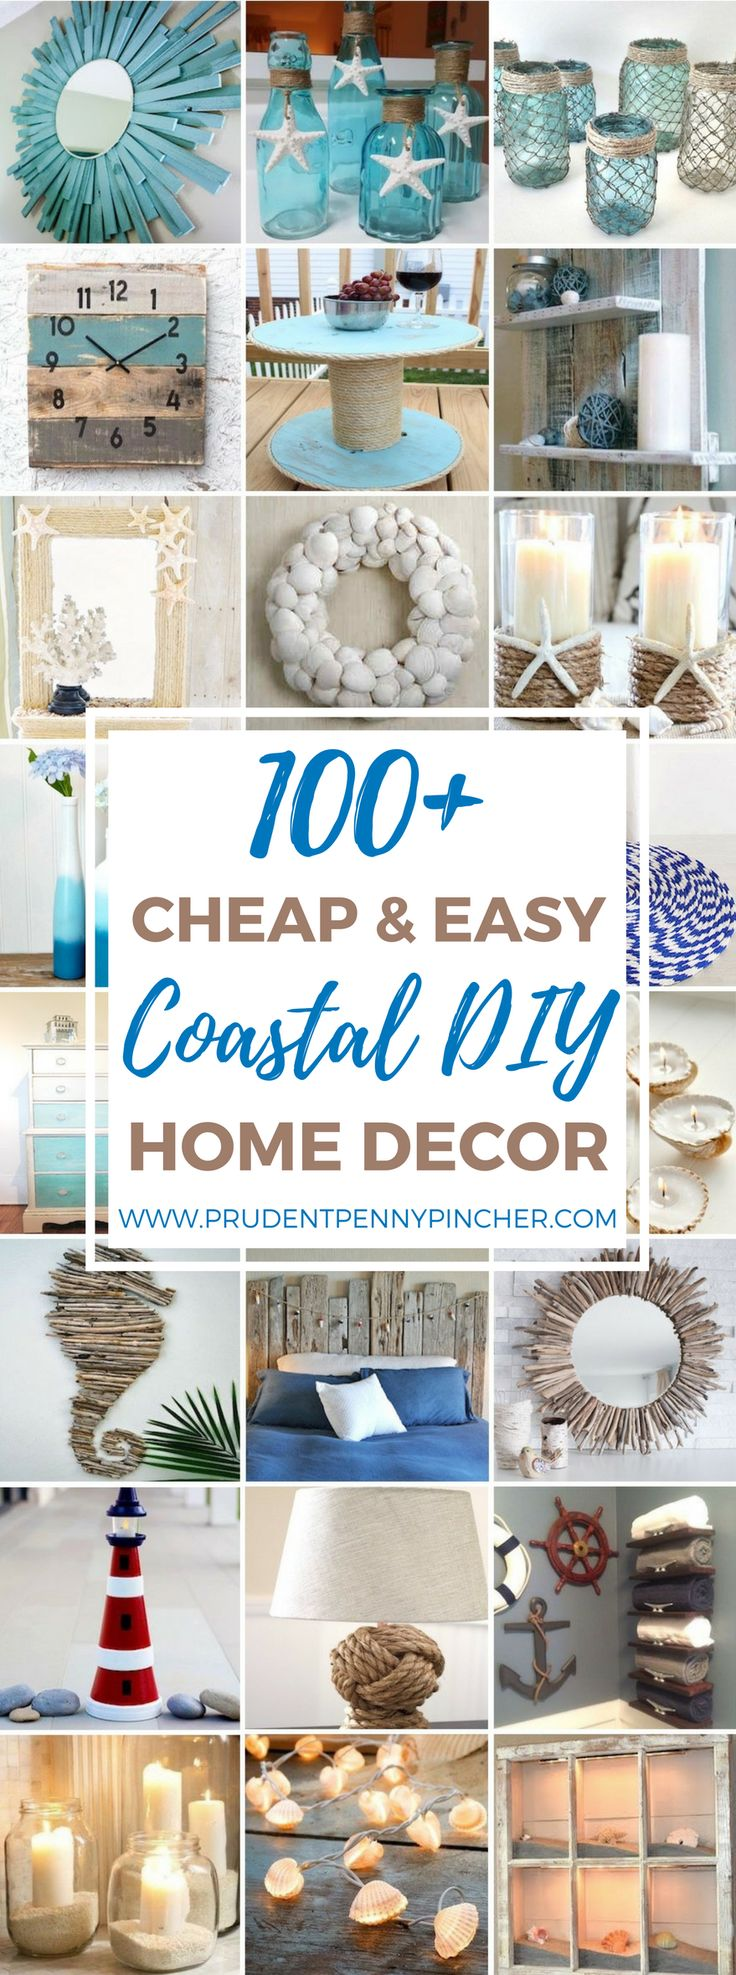 Here is a round up of the best cheap and easy coastal DIY home decor projects on the internet so that you can bring some of the beach to your home. I live in Florida so I am able to find many of the supplies for these DIY projects like shells, sand and wood for …